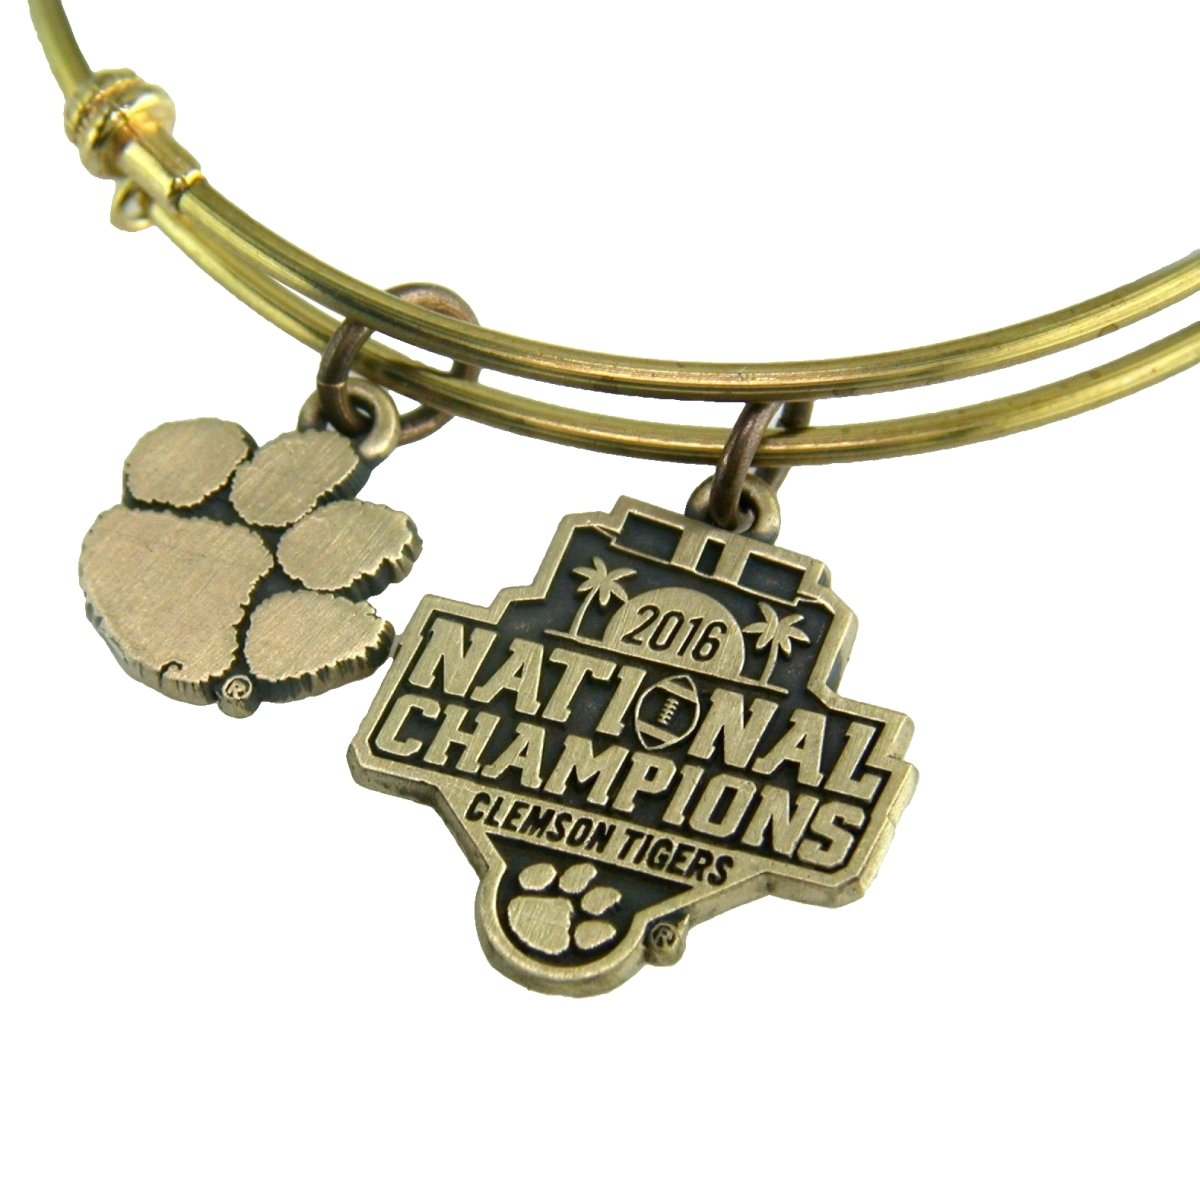 Argent Sport Clemson Tigers 2016 National Champions Gold Tone Bangle Charm Bracelet - Mr. Knickerbocker